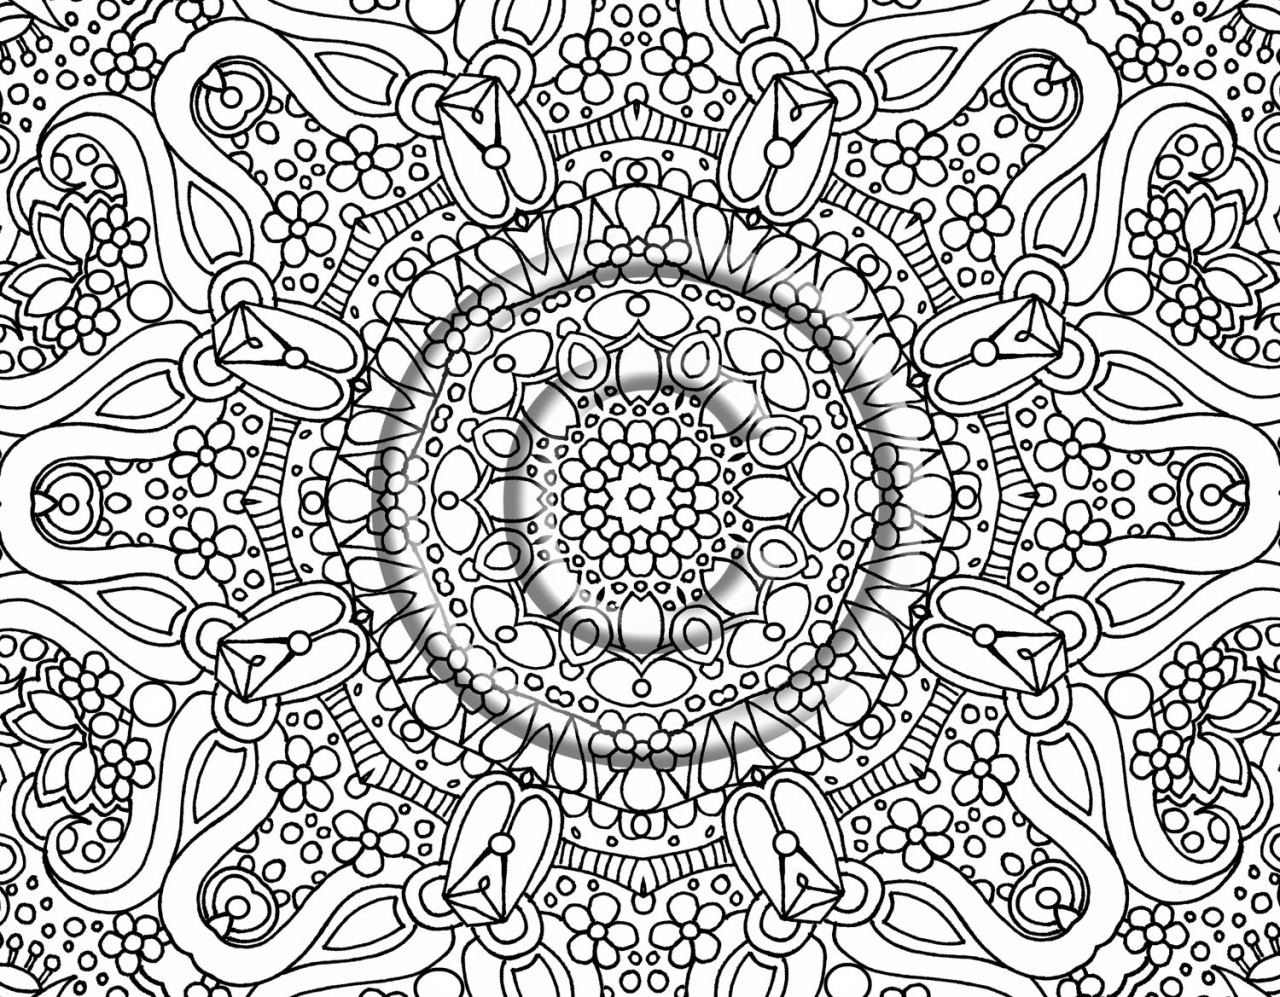 difficult coloring pages for teenagers coloring pages for adults difficult animals 7 coloring for pages teenagers coloring difficult